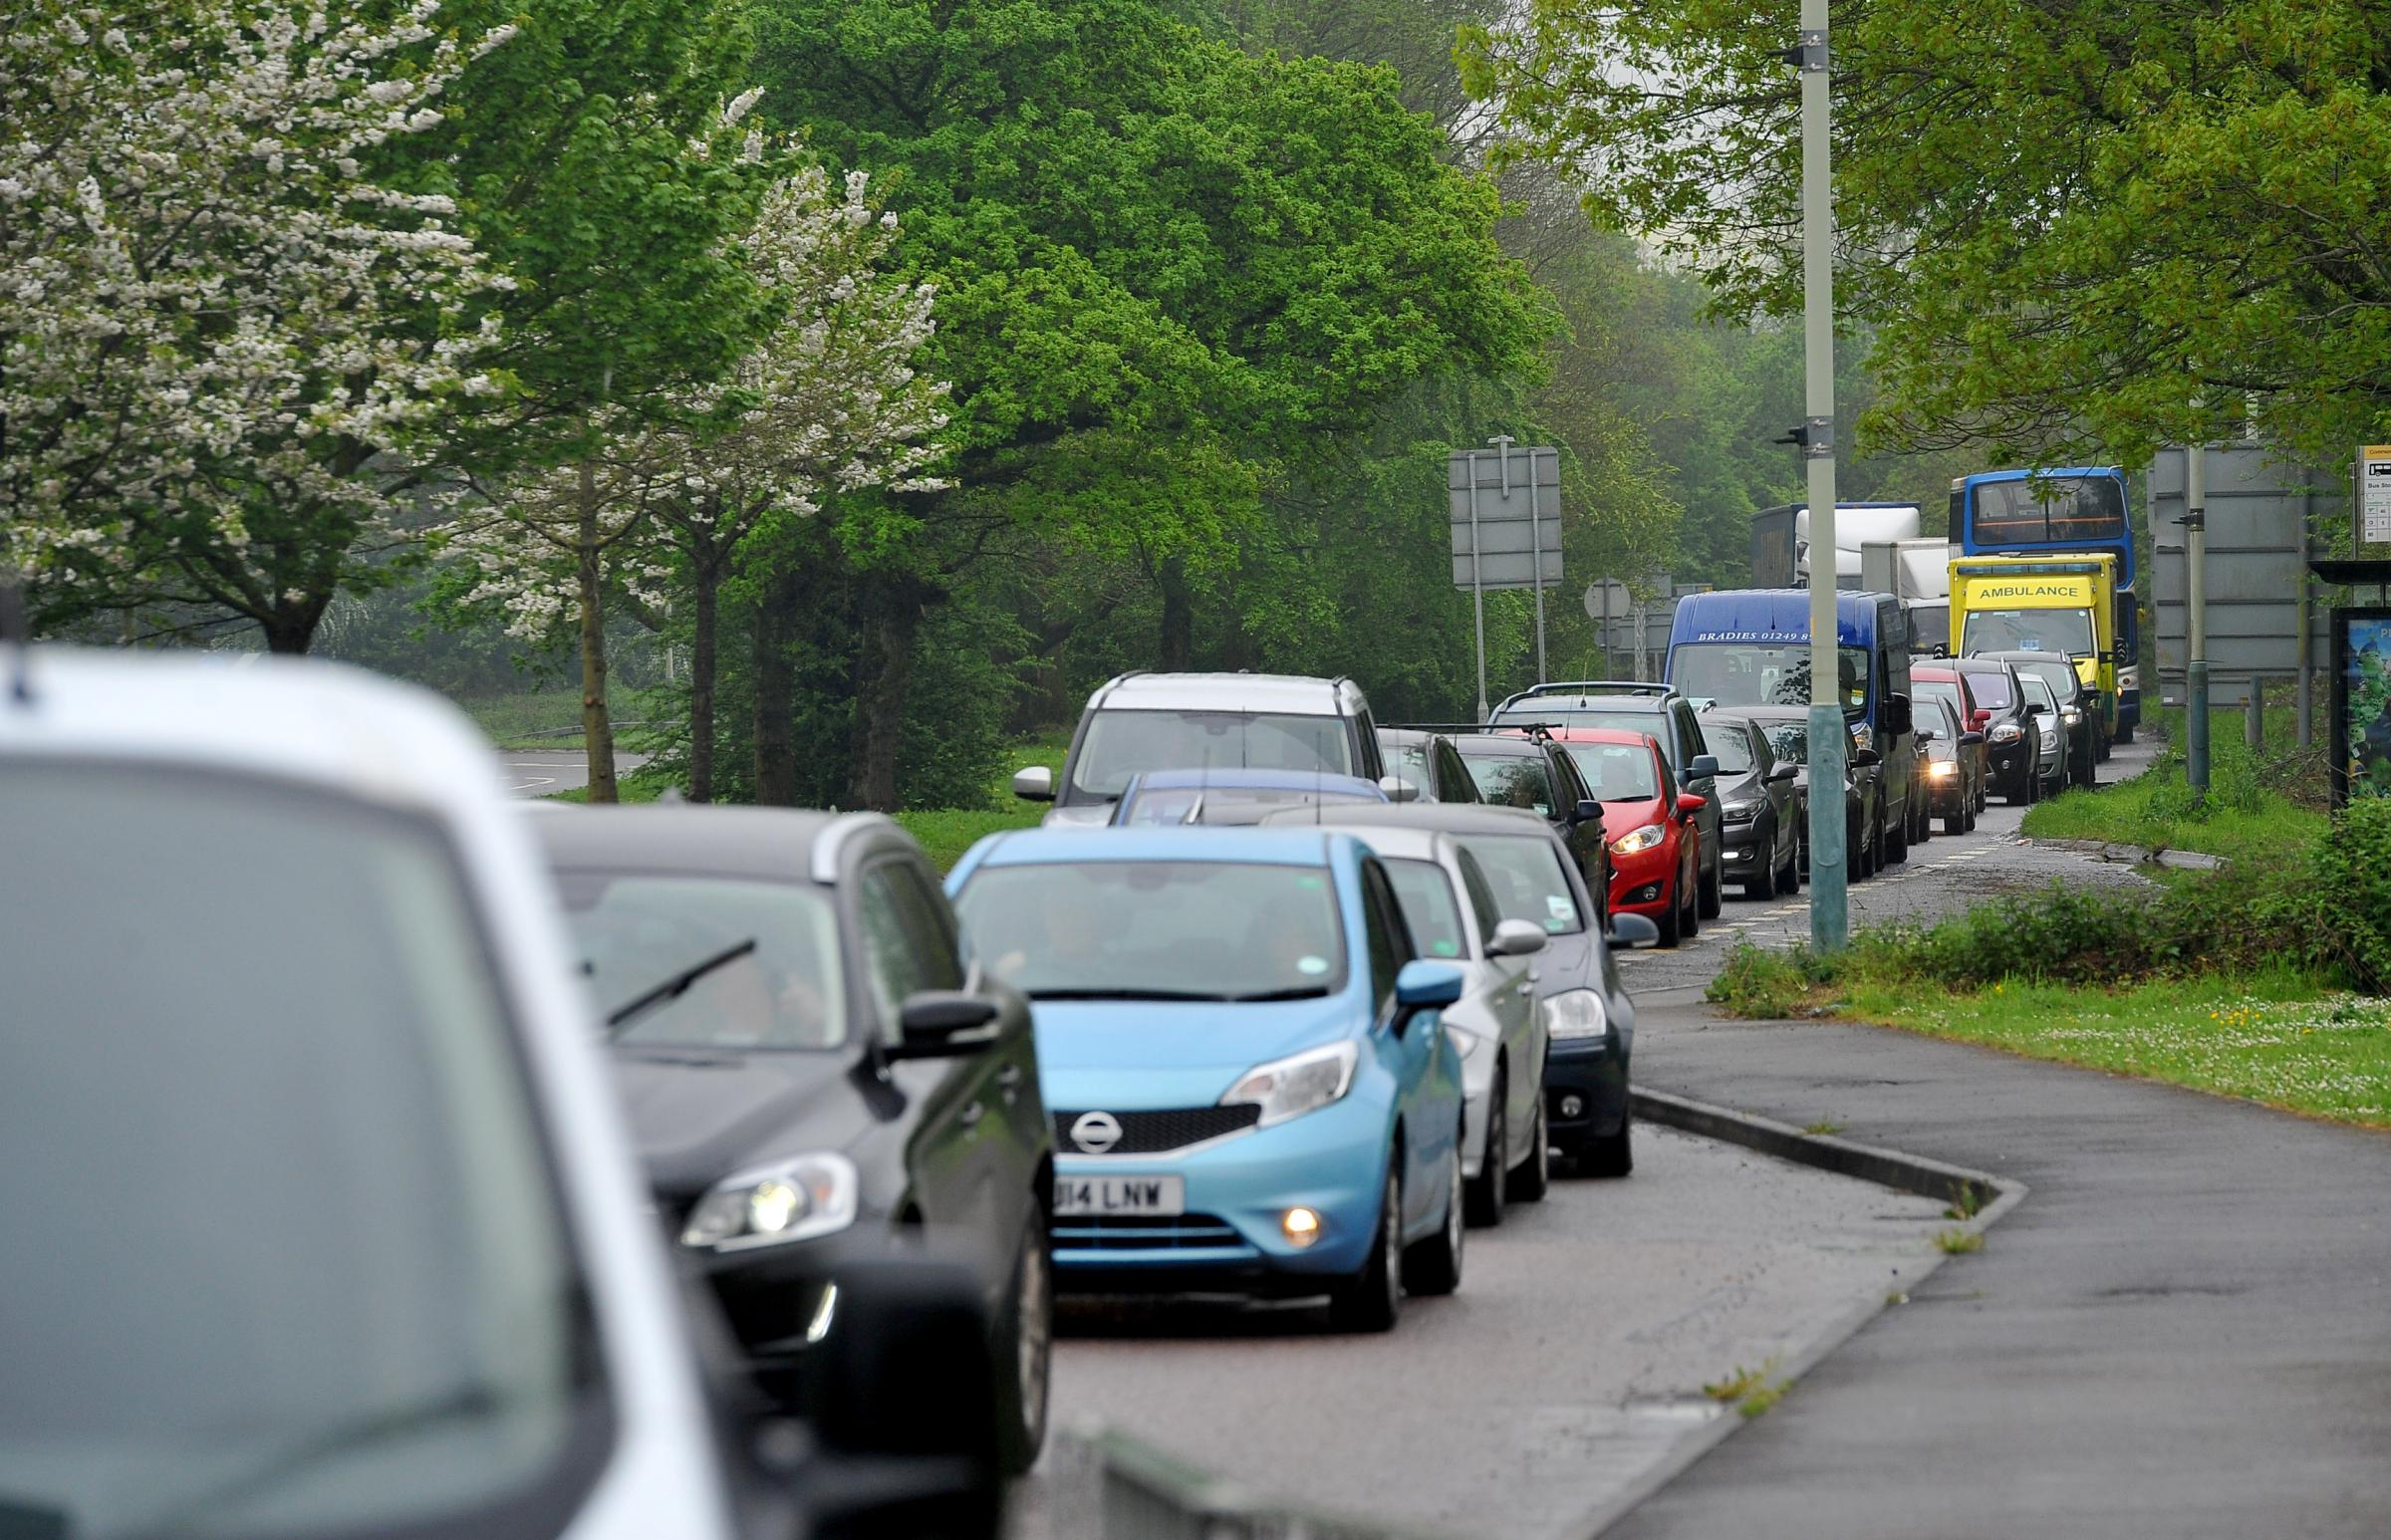 Friday's traffic update: flooding on the roads and slow in west Swindon